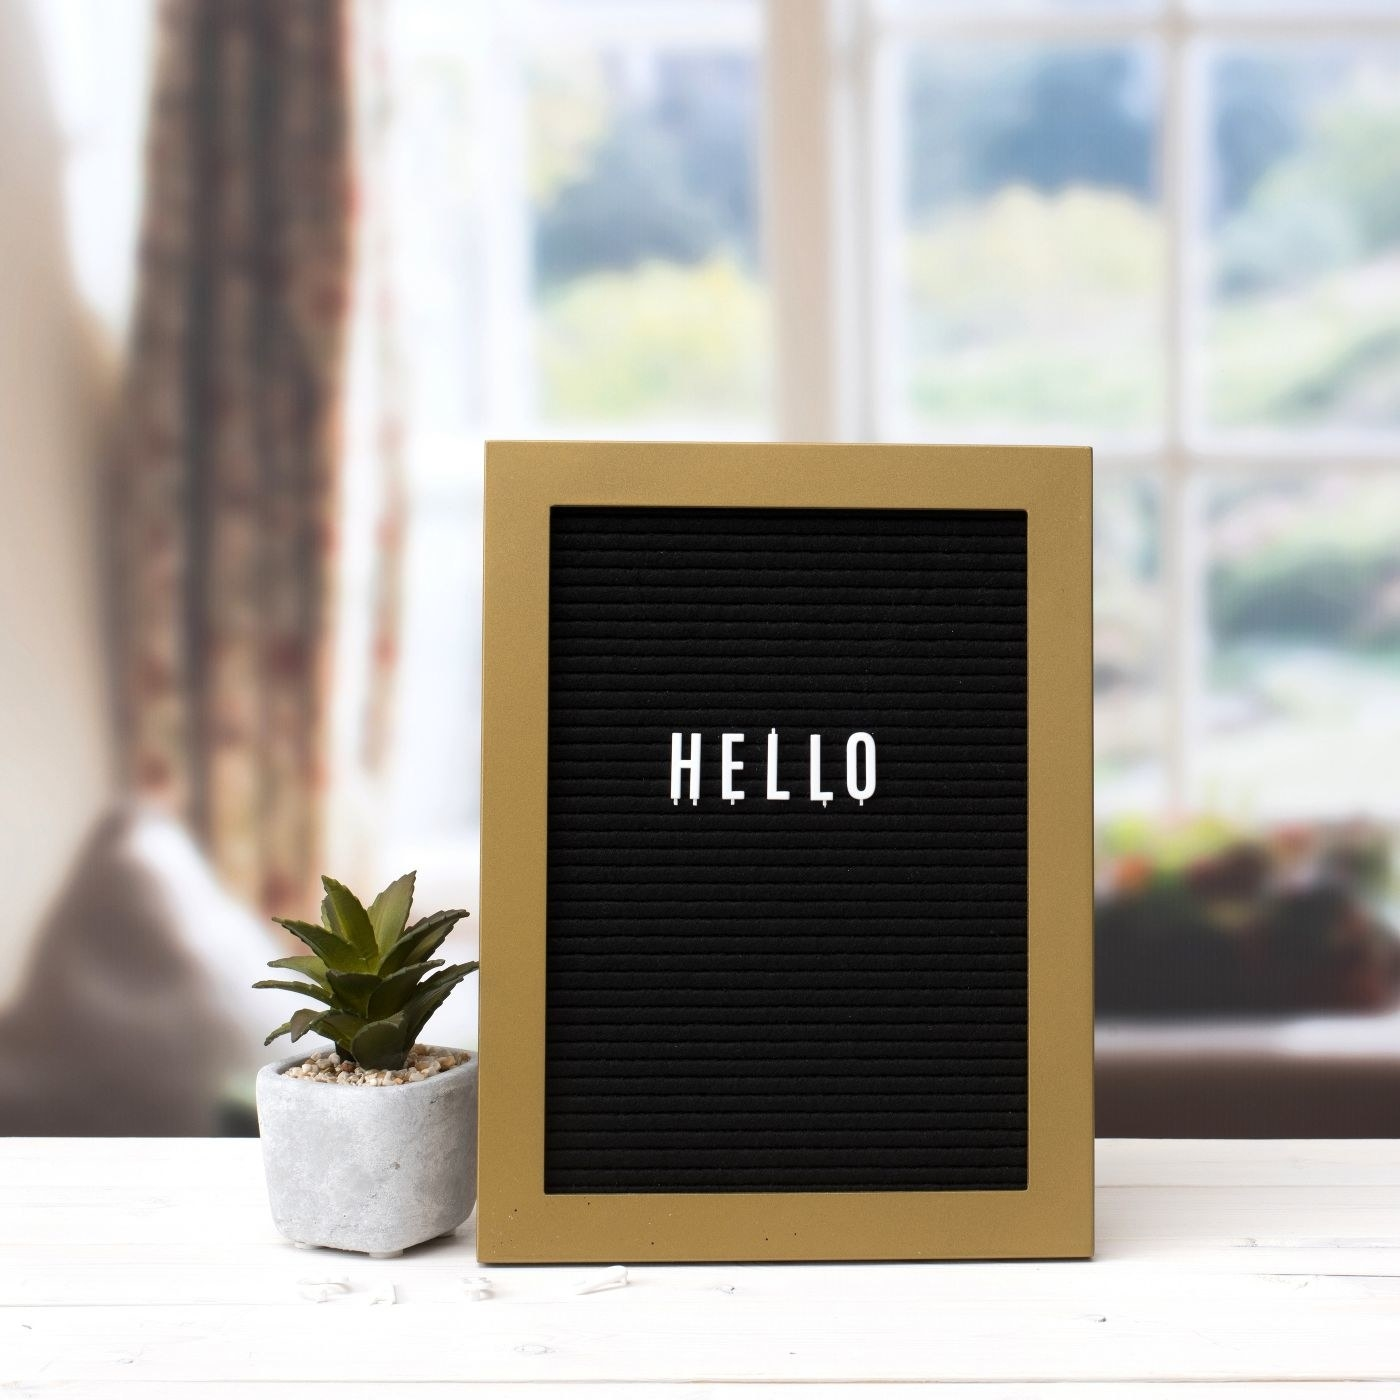 The letterboard set with a greeting